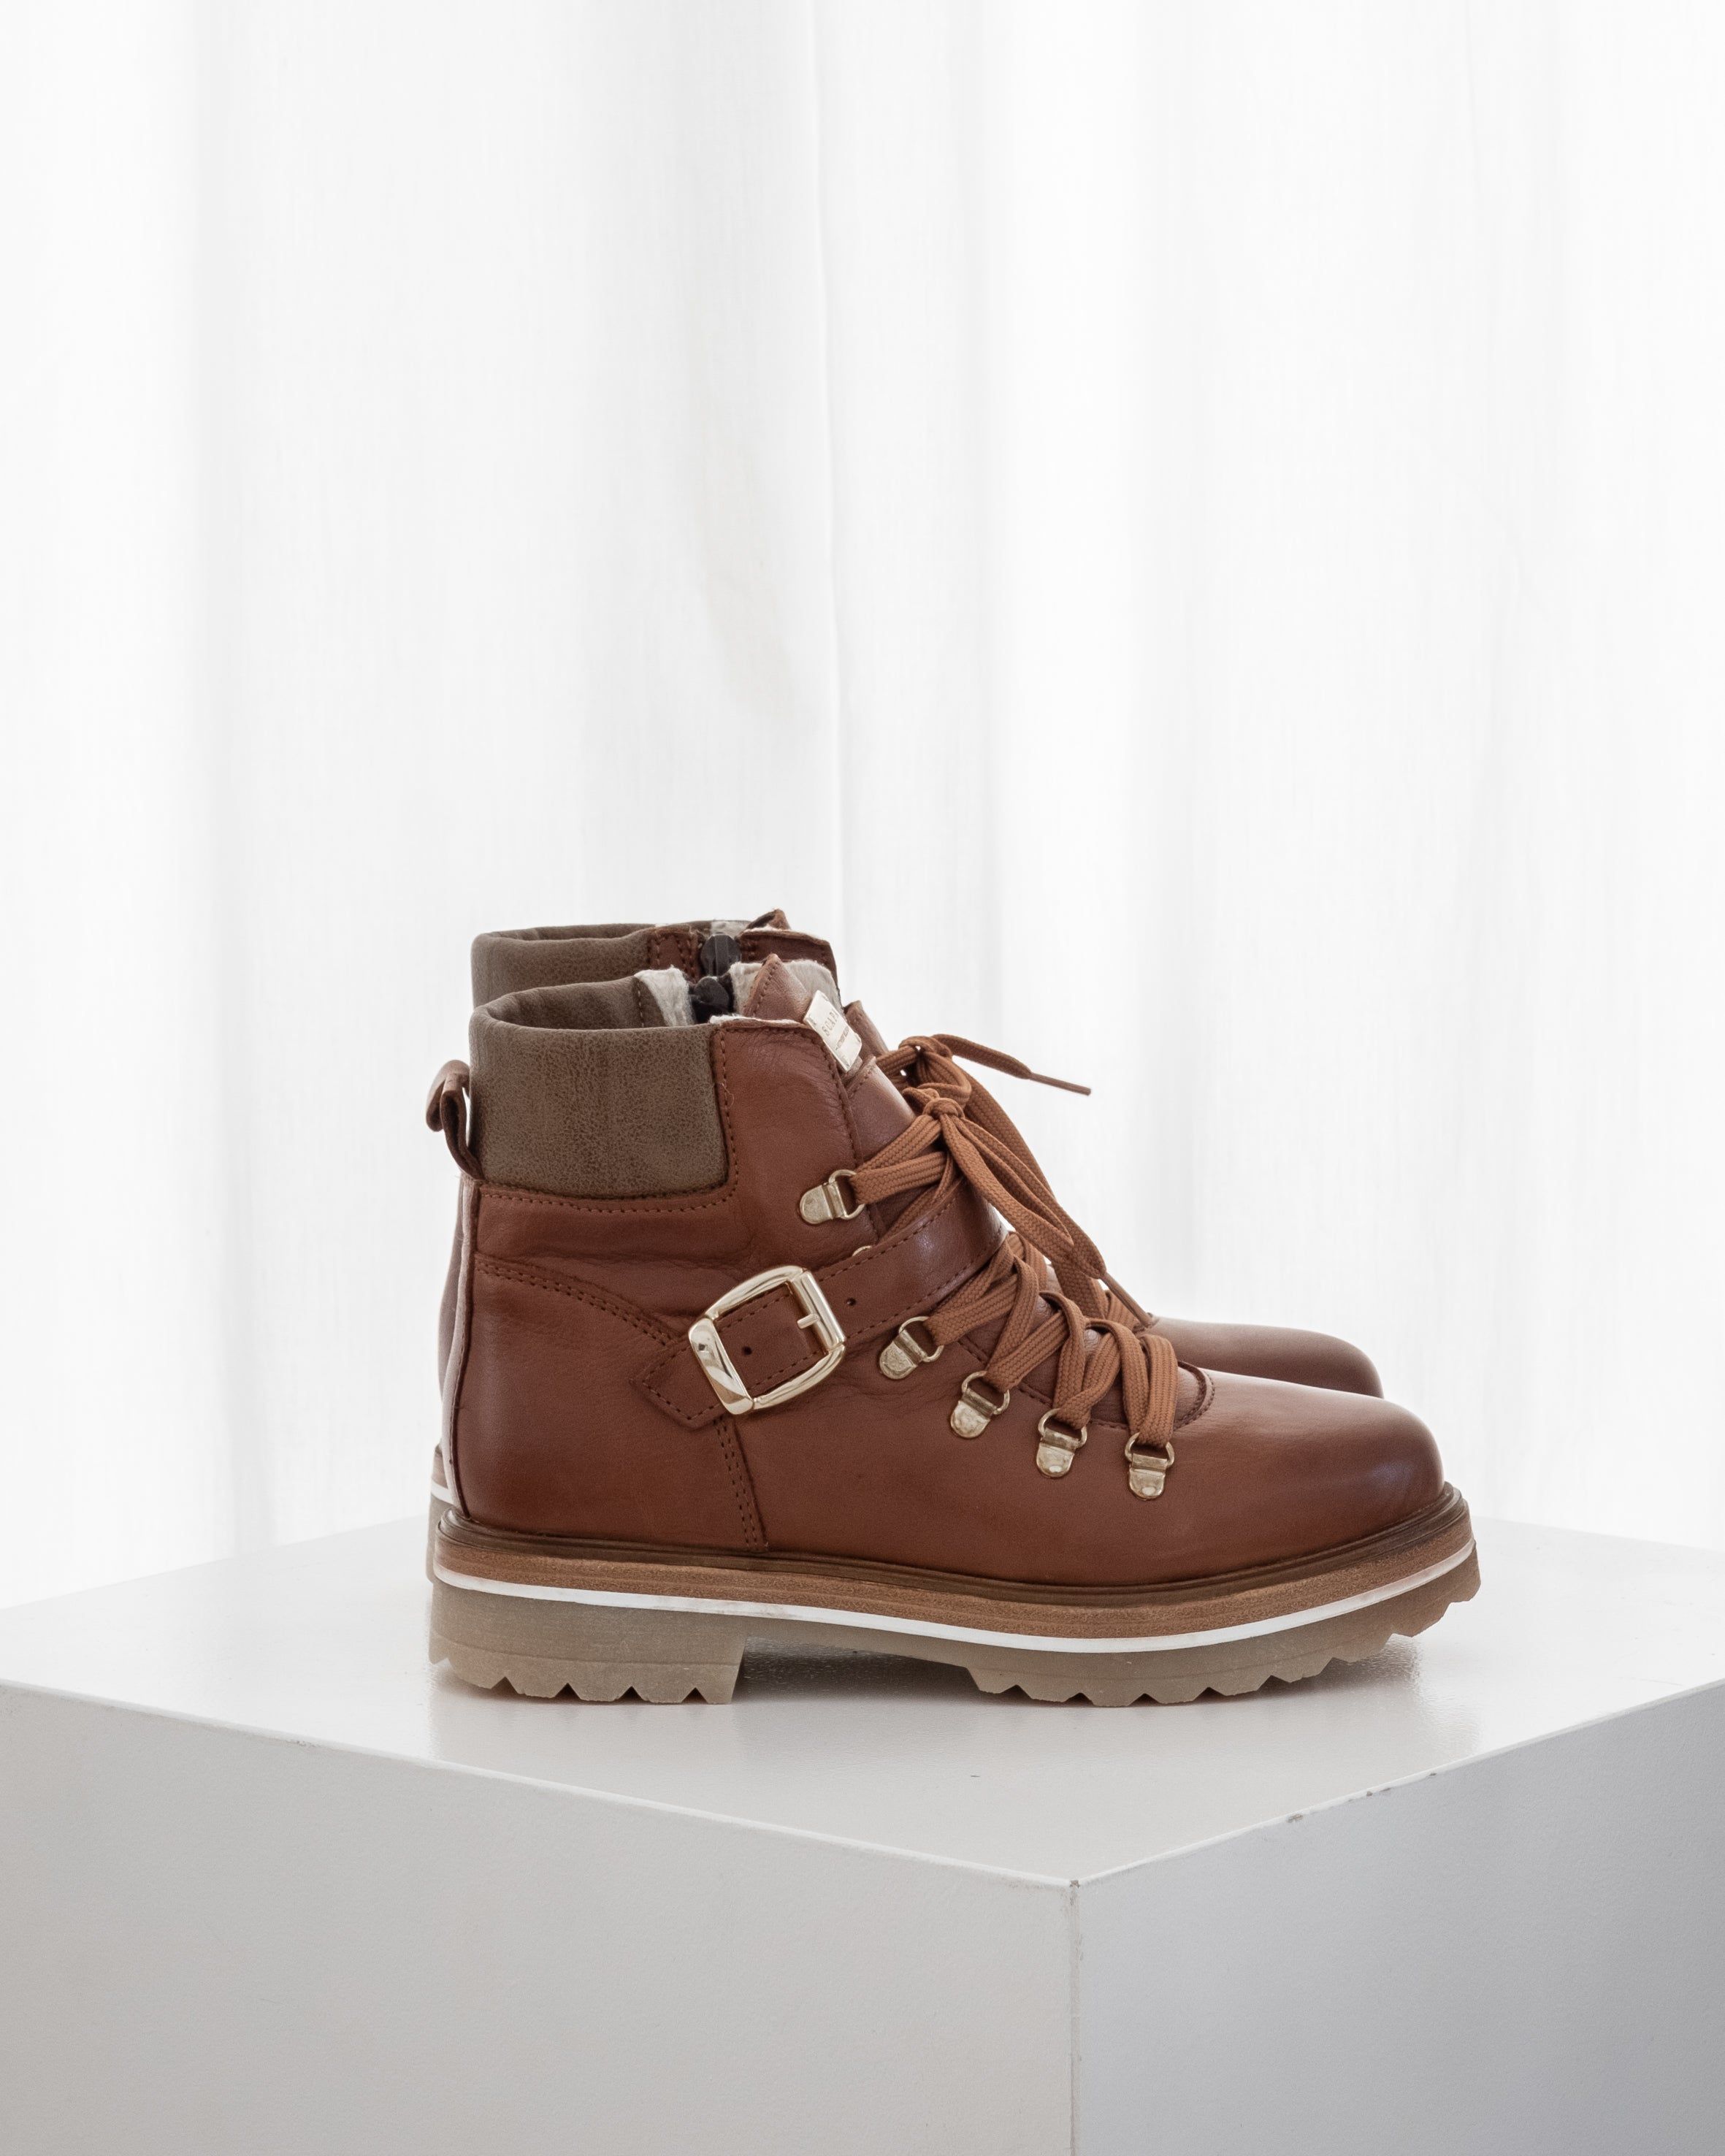 BOOT TORINO - Shoes - SCAPA FASHION - SCAPA OFFICIAL